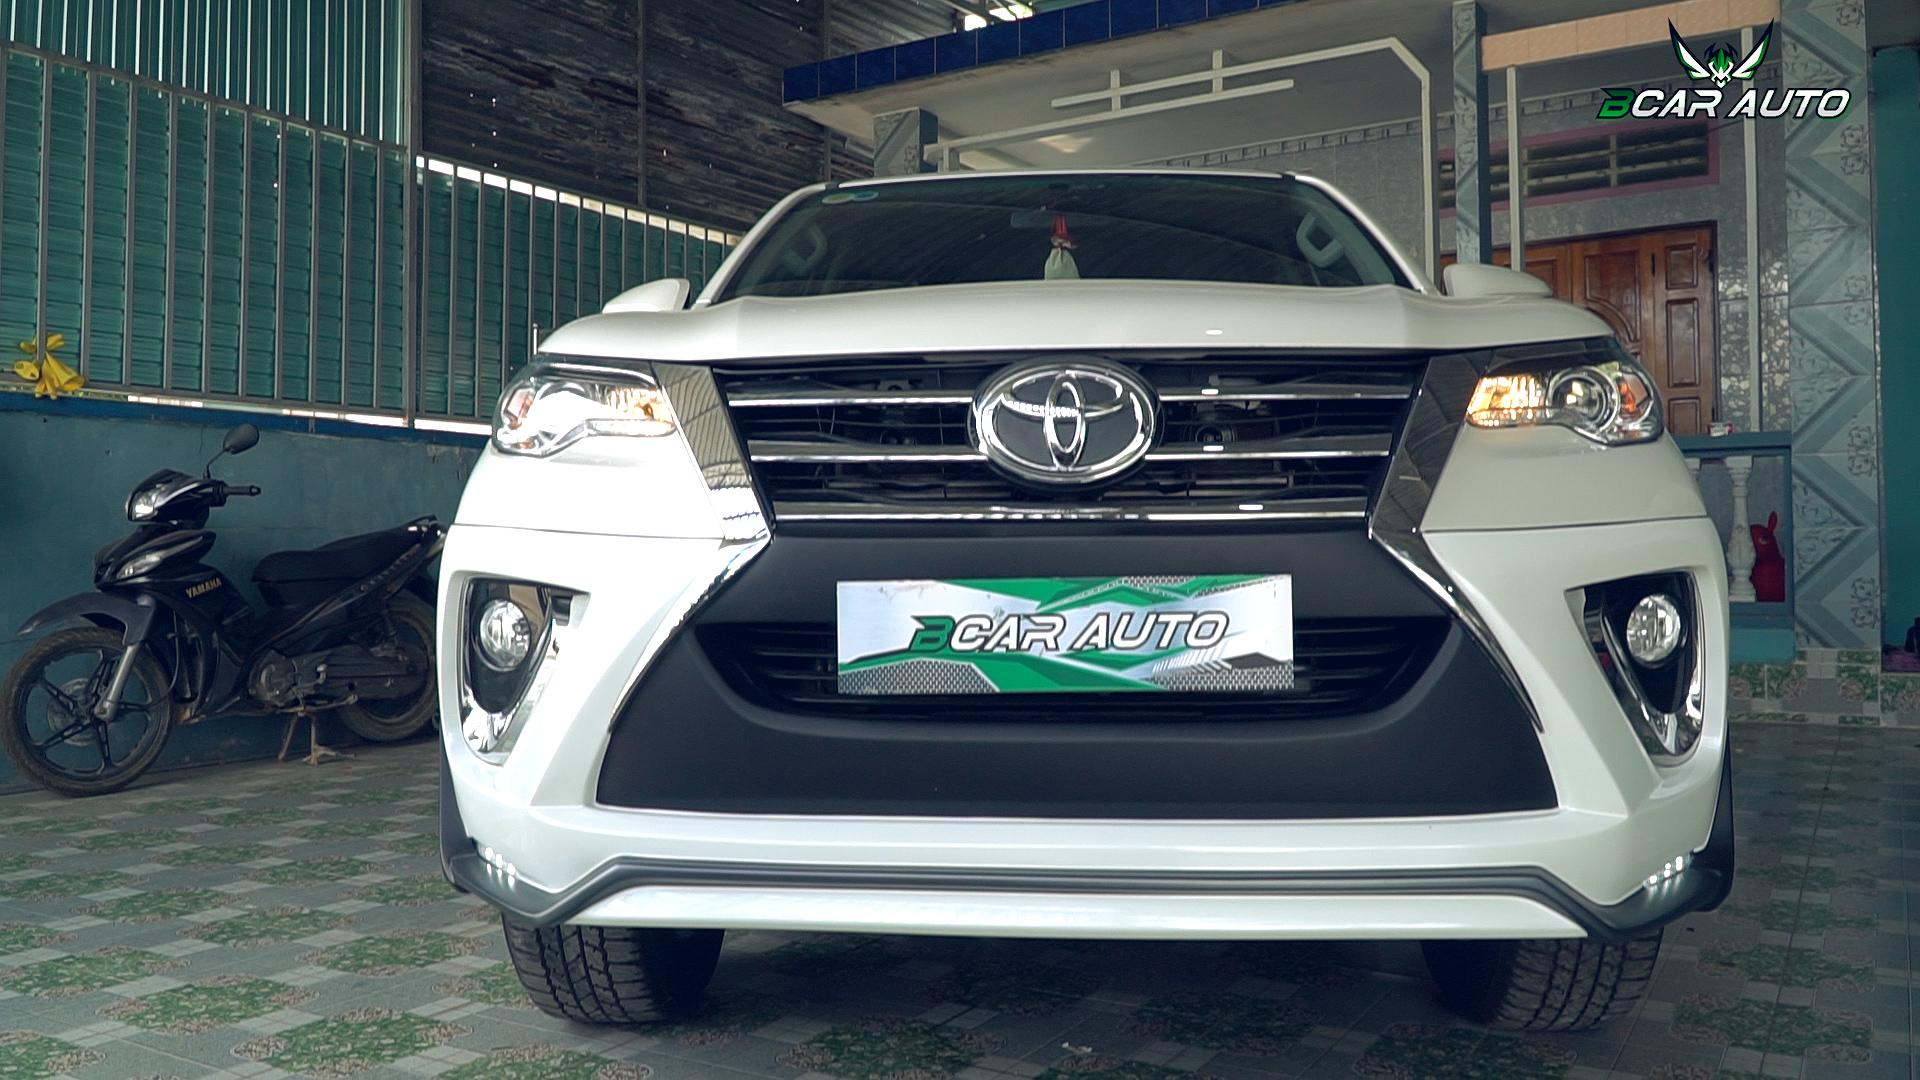 Body Kit Ativus Mẫu Lexus Cho Fortuner 2020